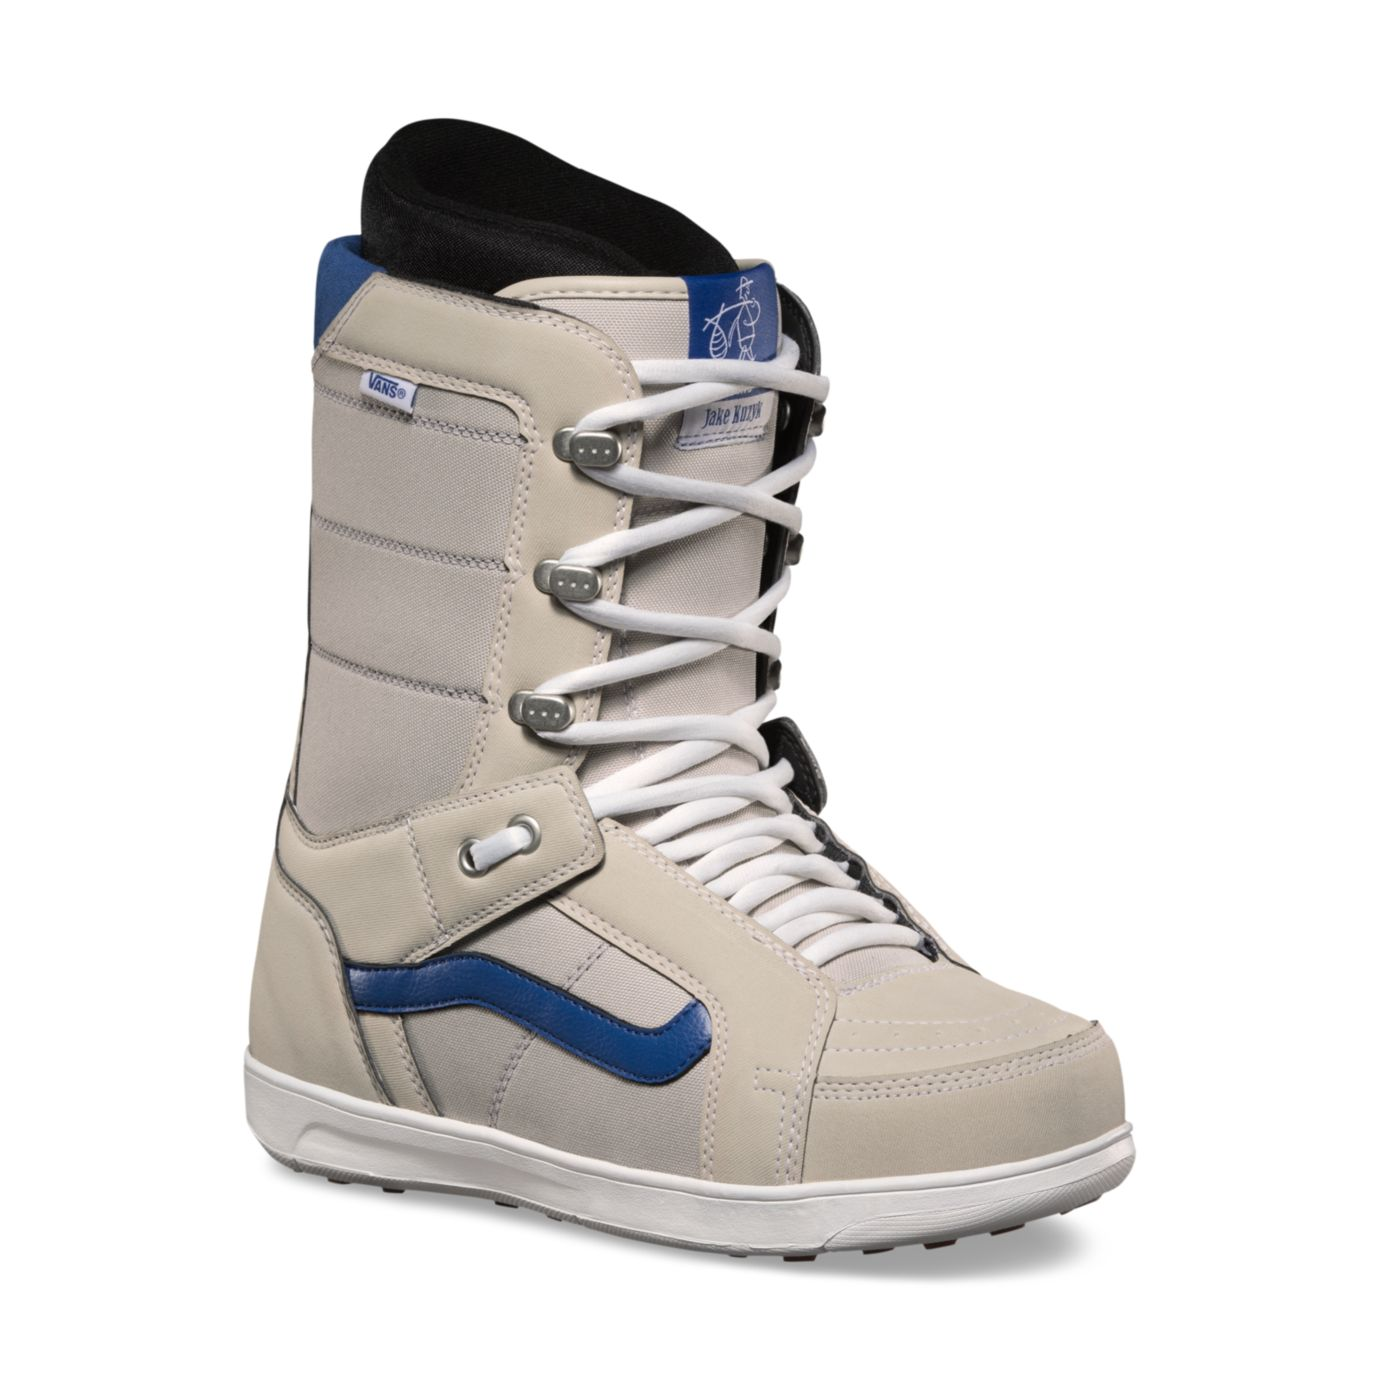 346a238cc0 The Pat Moore Infuse Snowboard Boot